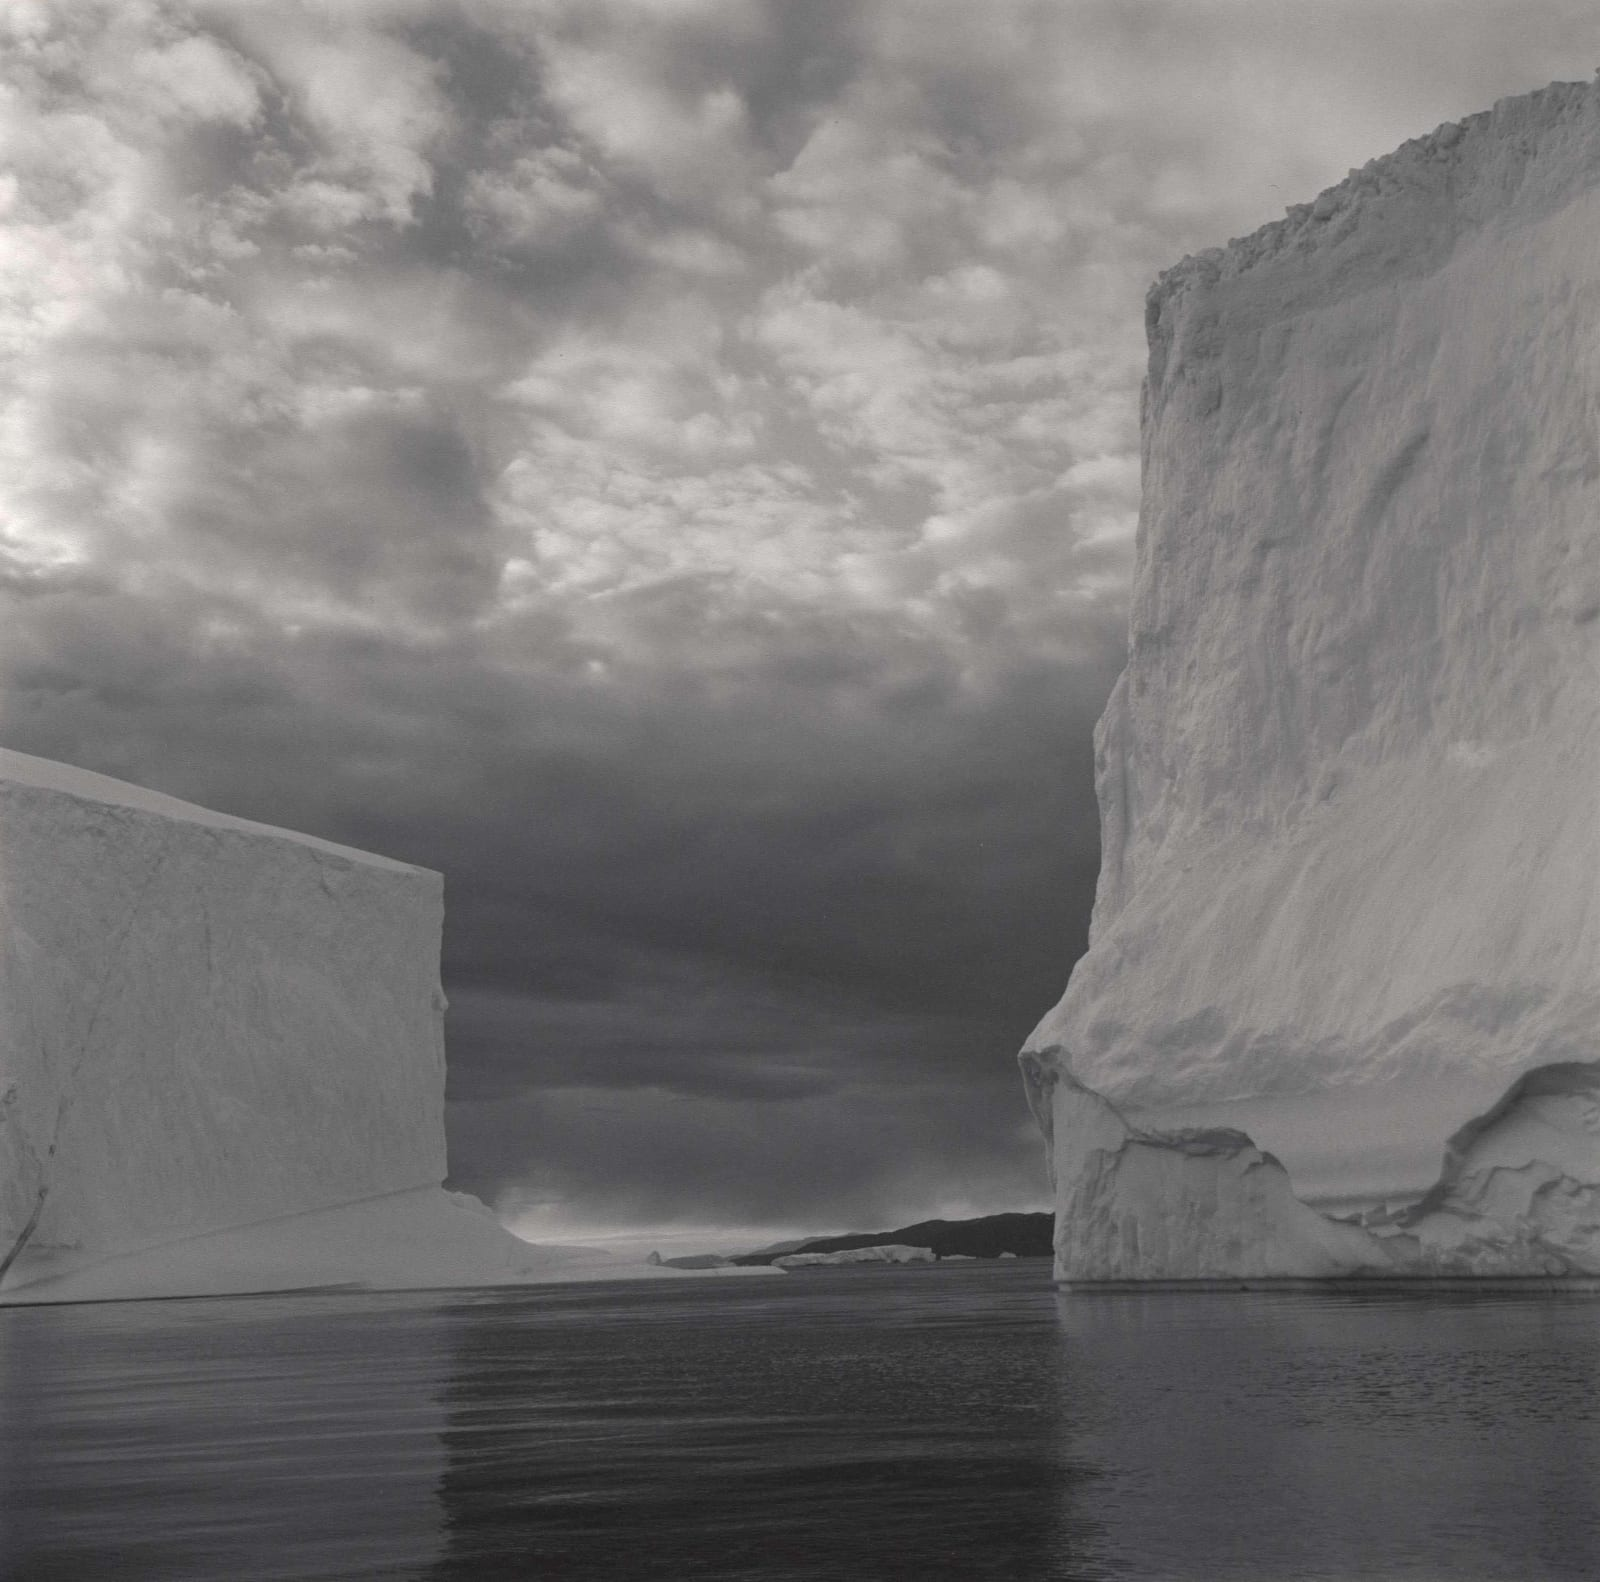 Lynn Davis photograph of two geometric icebergs in Disko Bay, Greenland, with cloudy sky and inky water